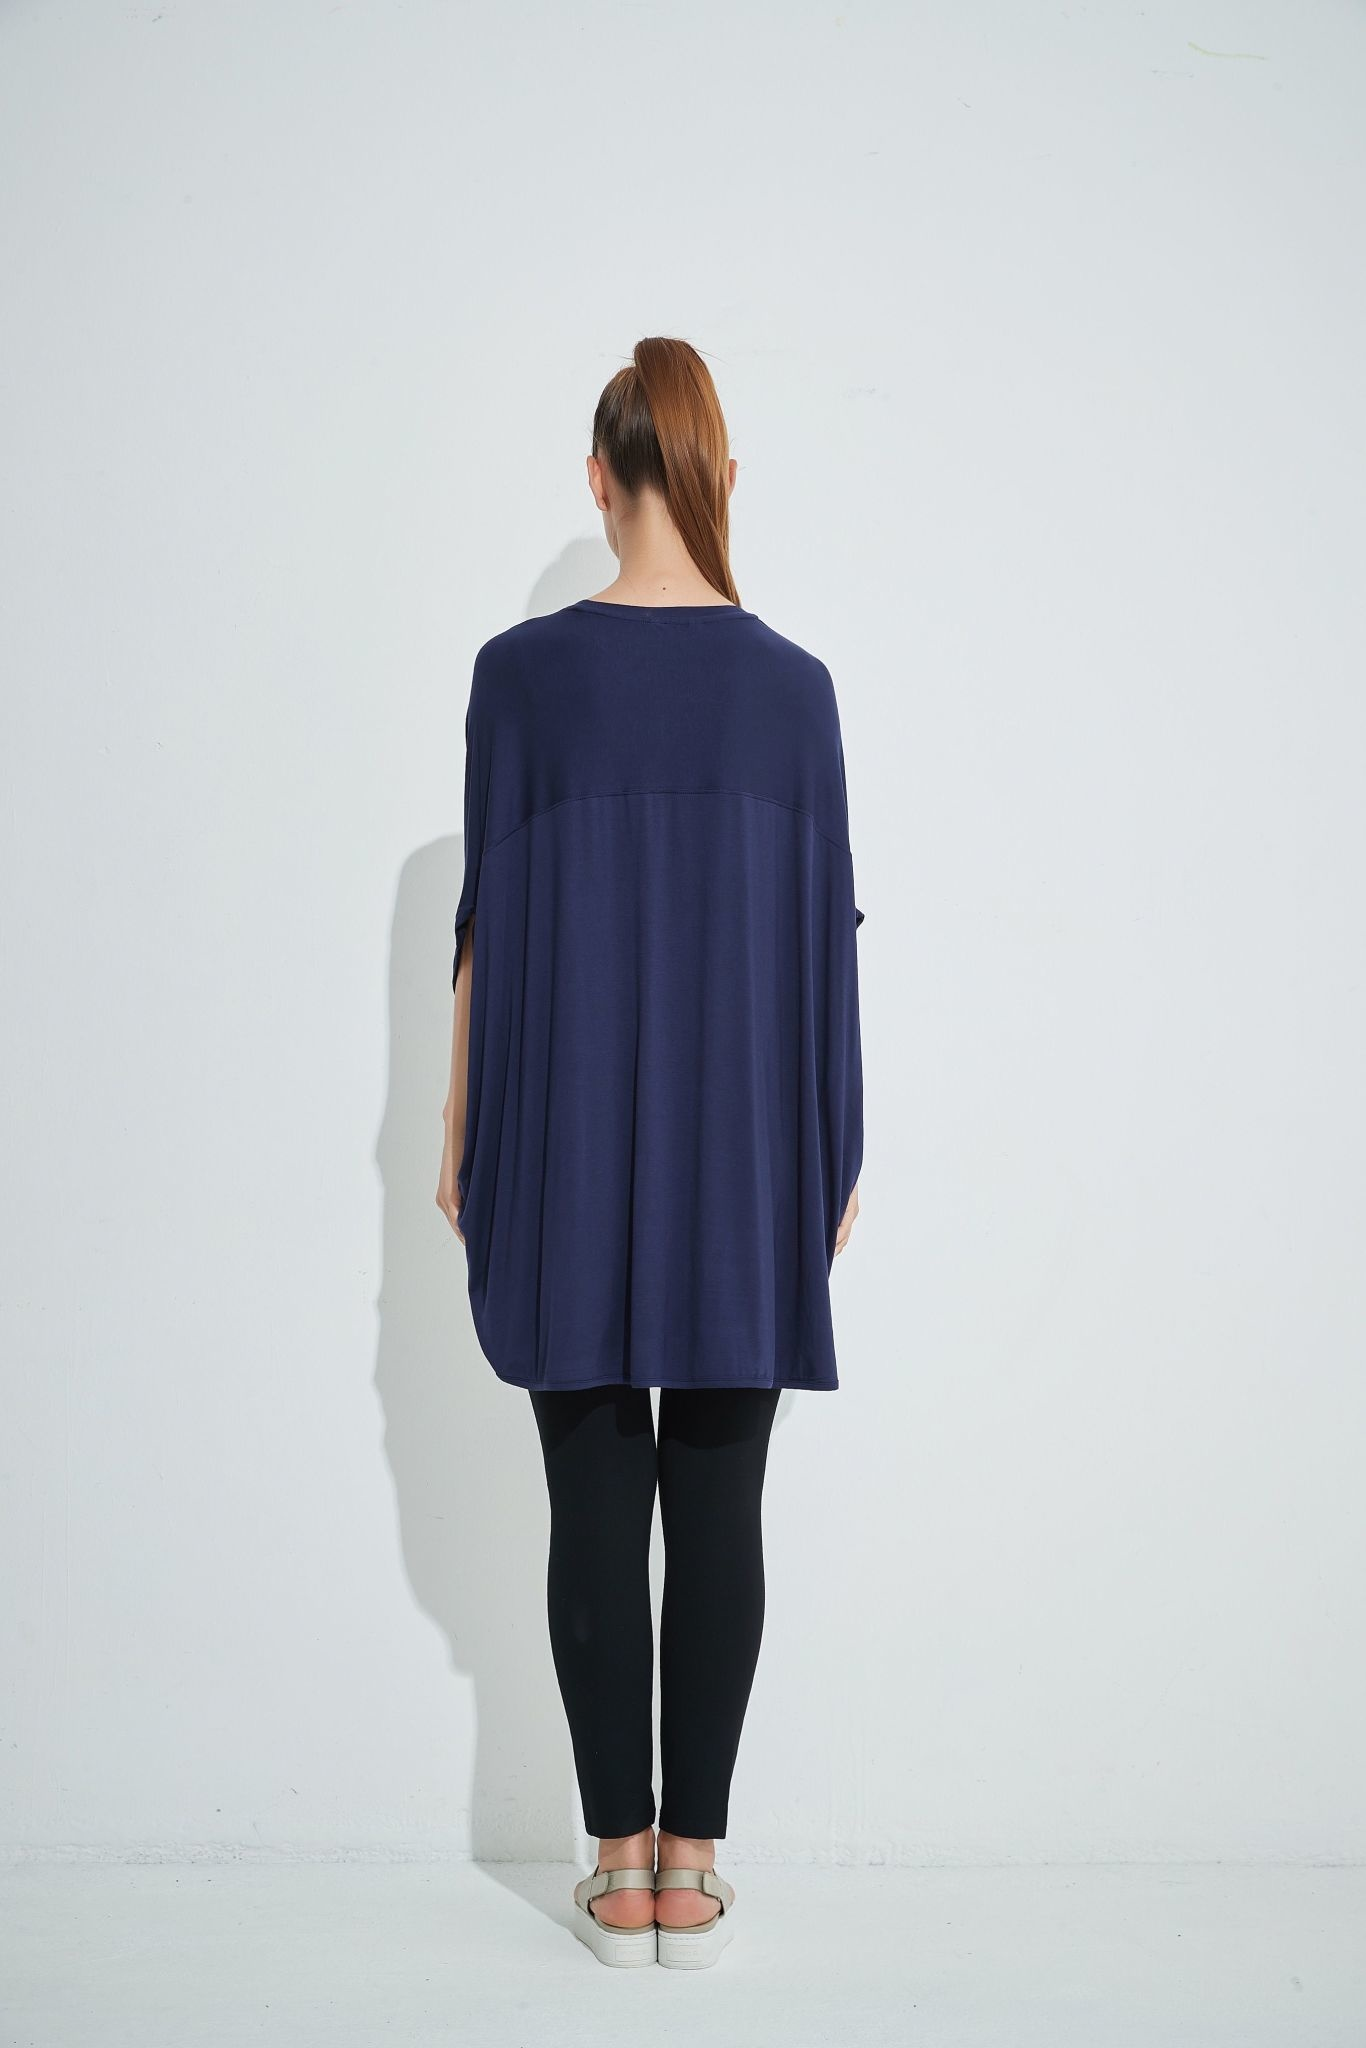 Tirelli Oversized Relaxed Top